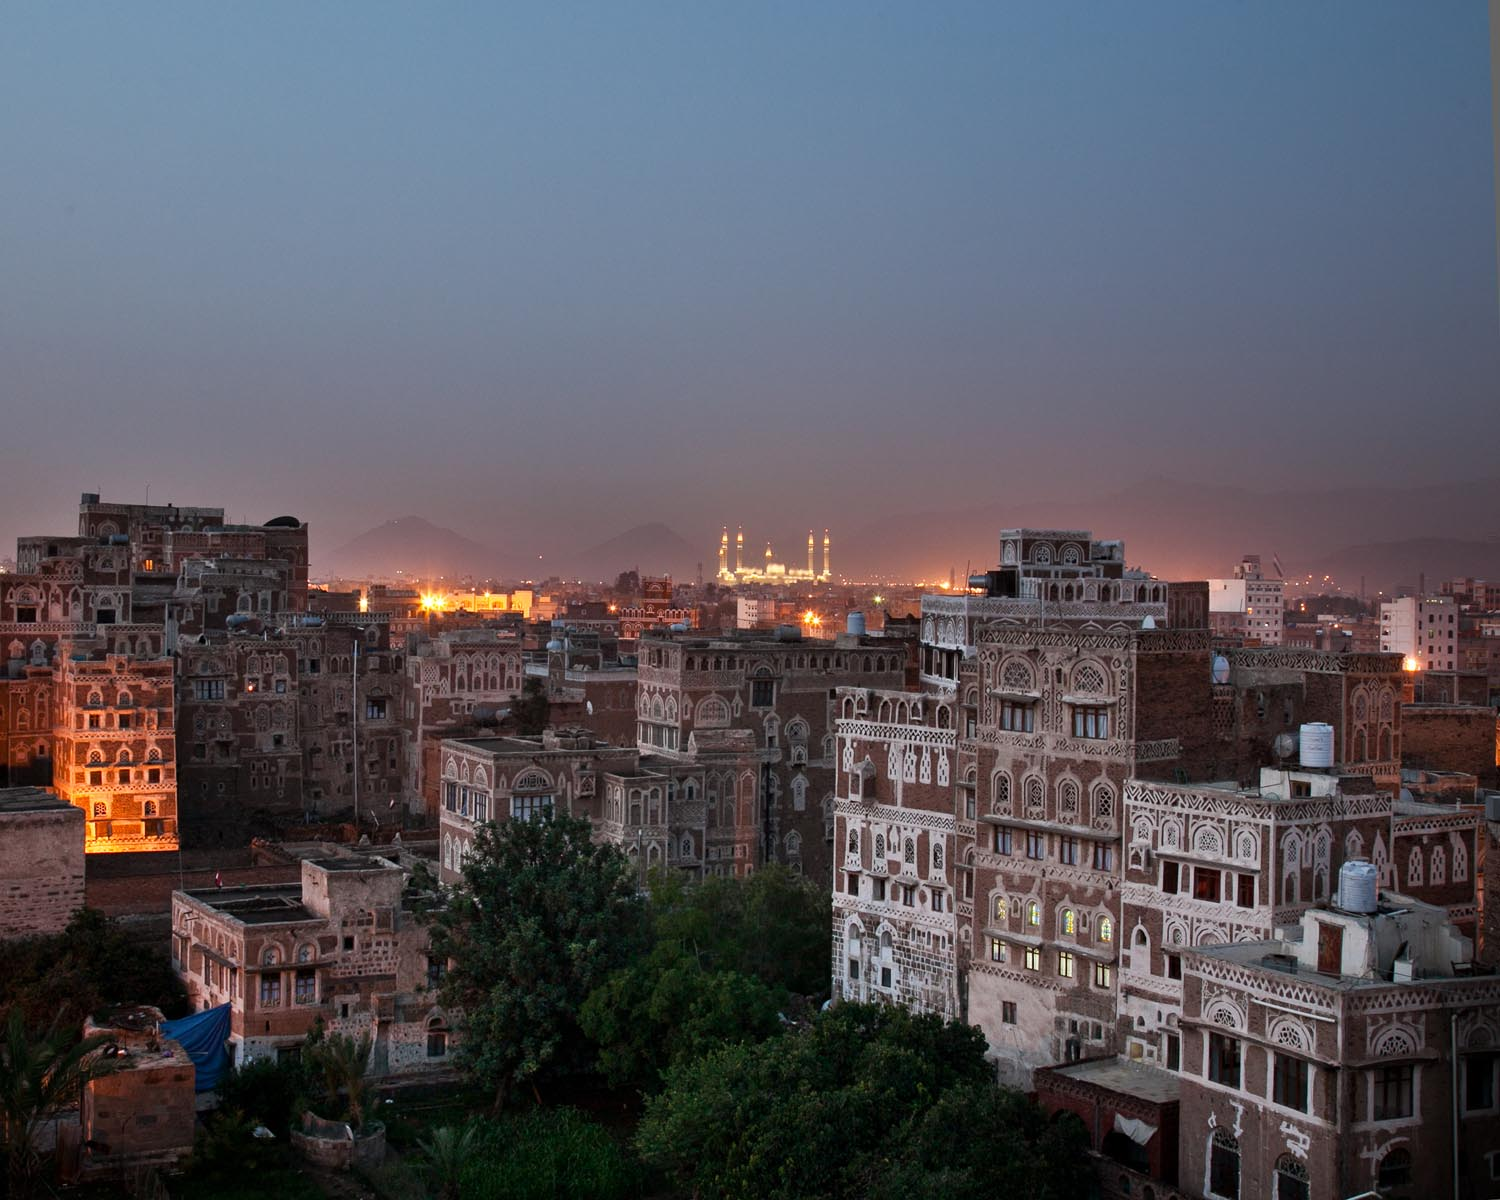 The sun begins to rise over Sana'a. August 2010.